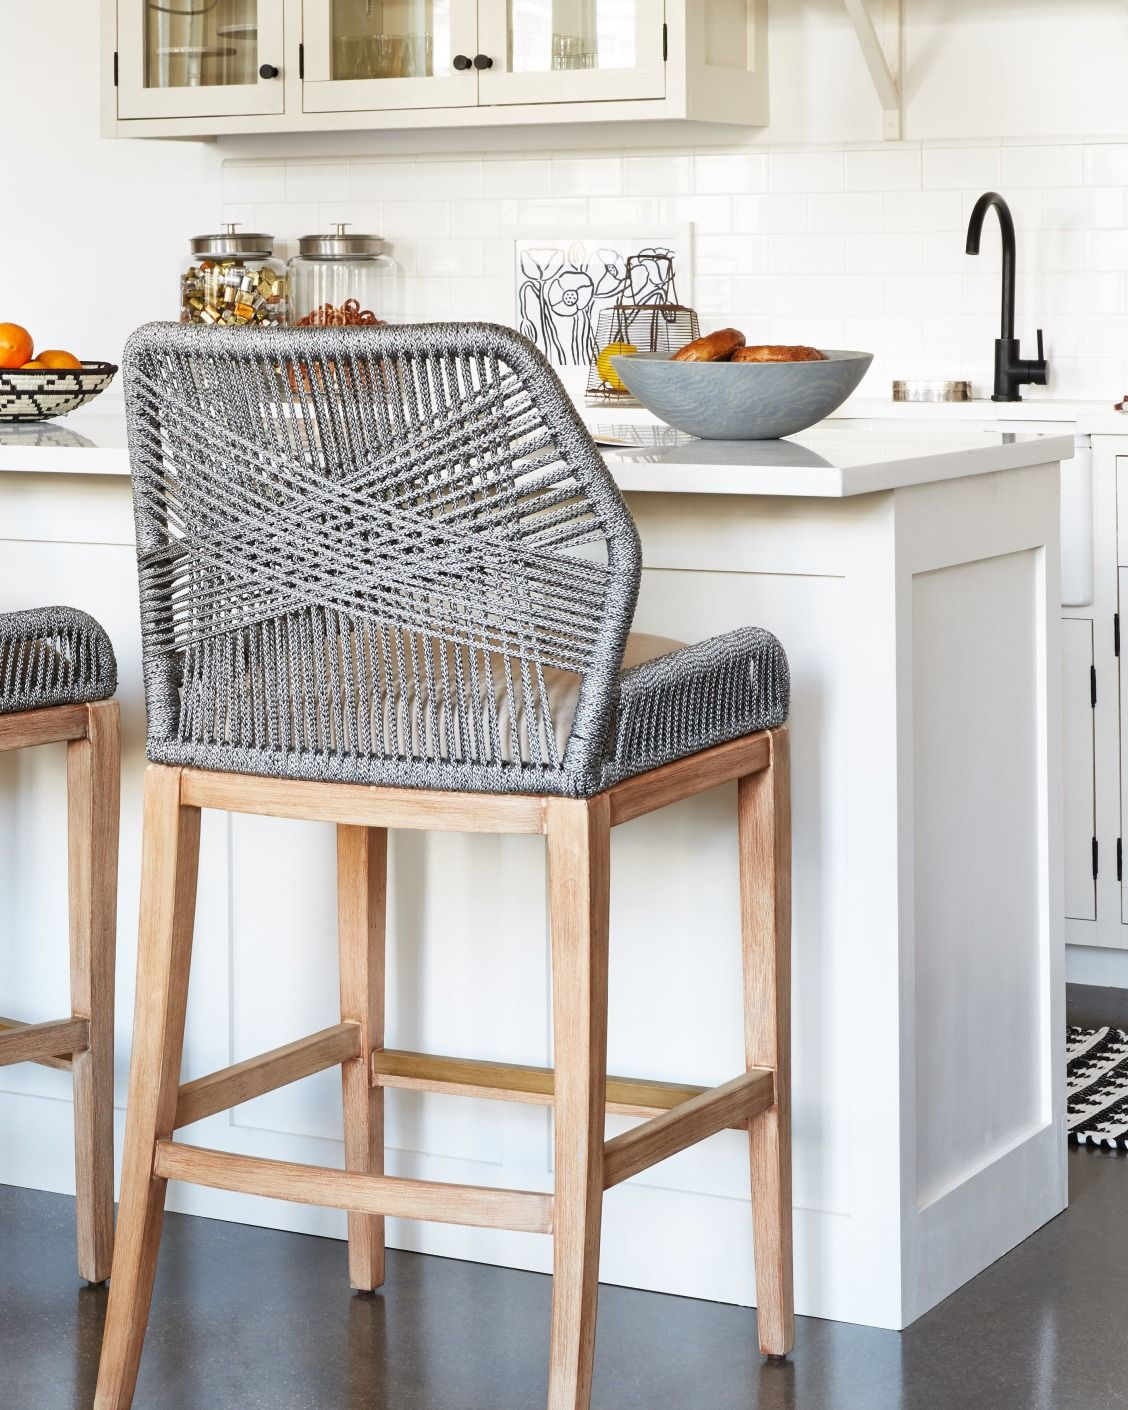 Kitchen Bar Stools On Sale These Woven Rope Counter Stools Are Such A Fun Unexpected Kitchen